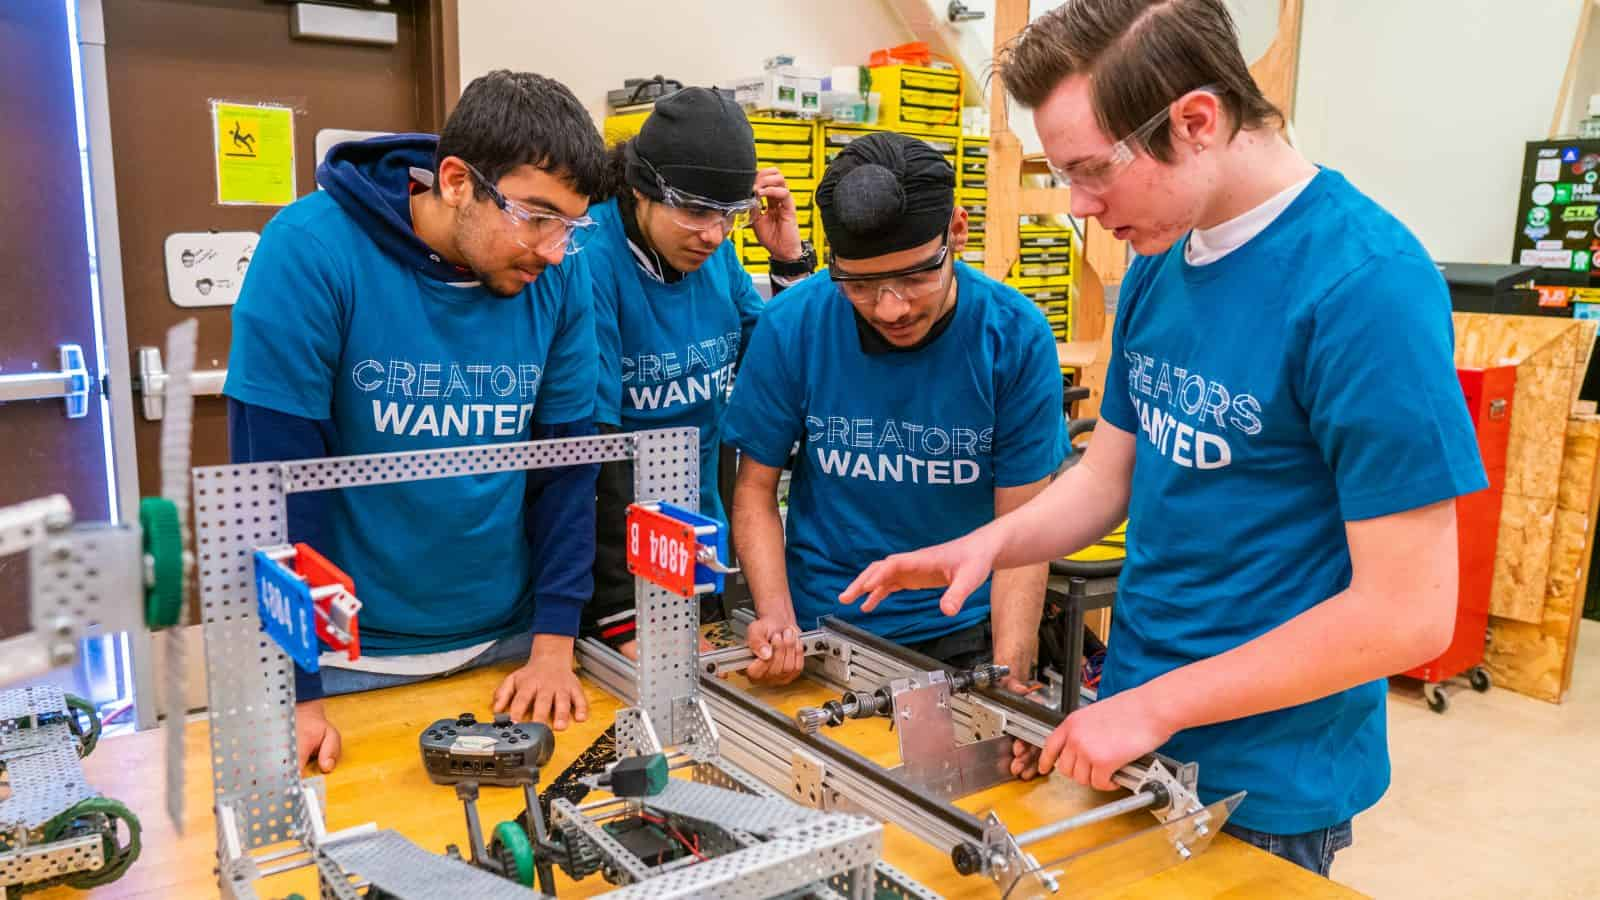 Students work on a manufacturing project while wearing Creators Wanted t-shirts